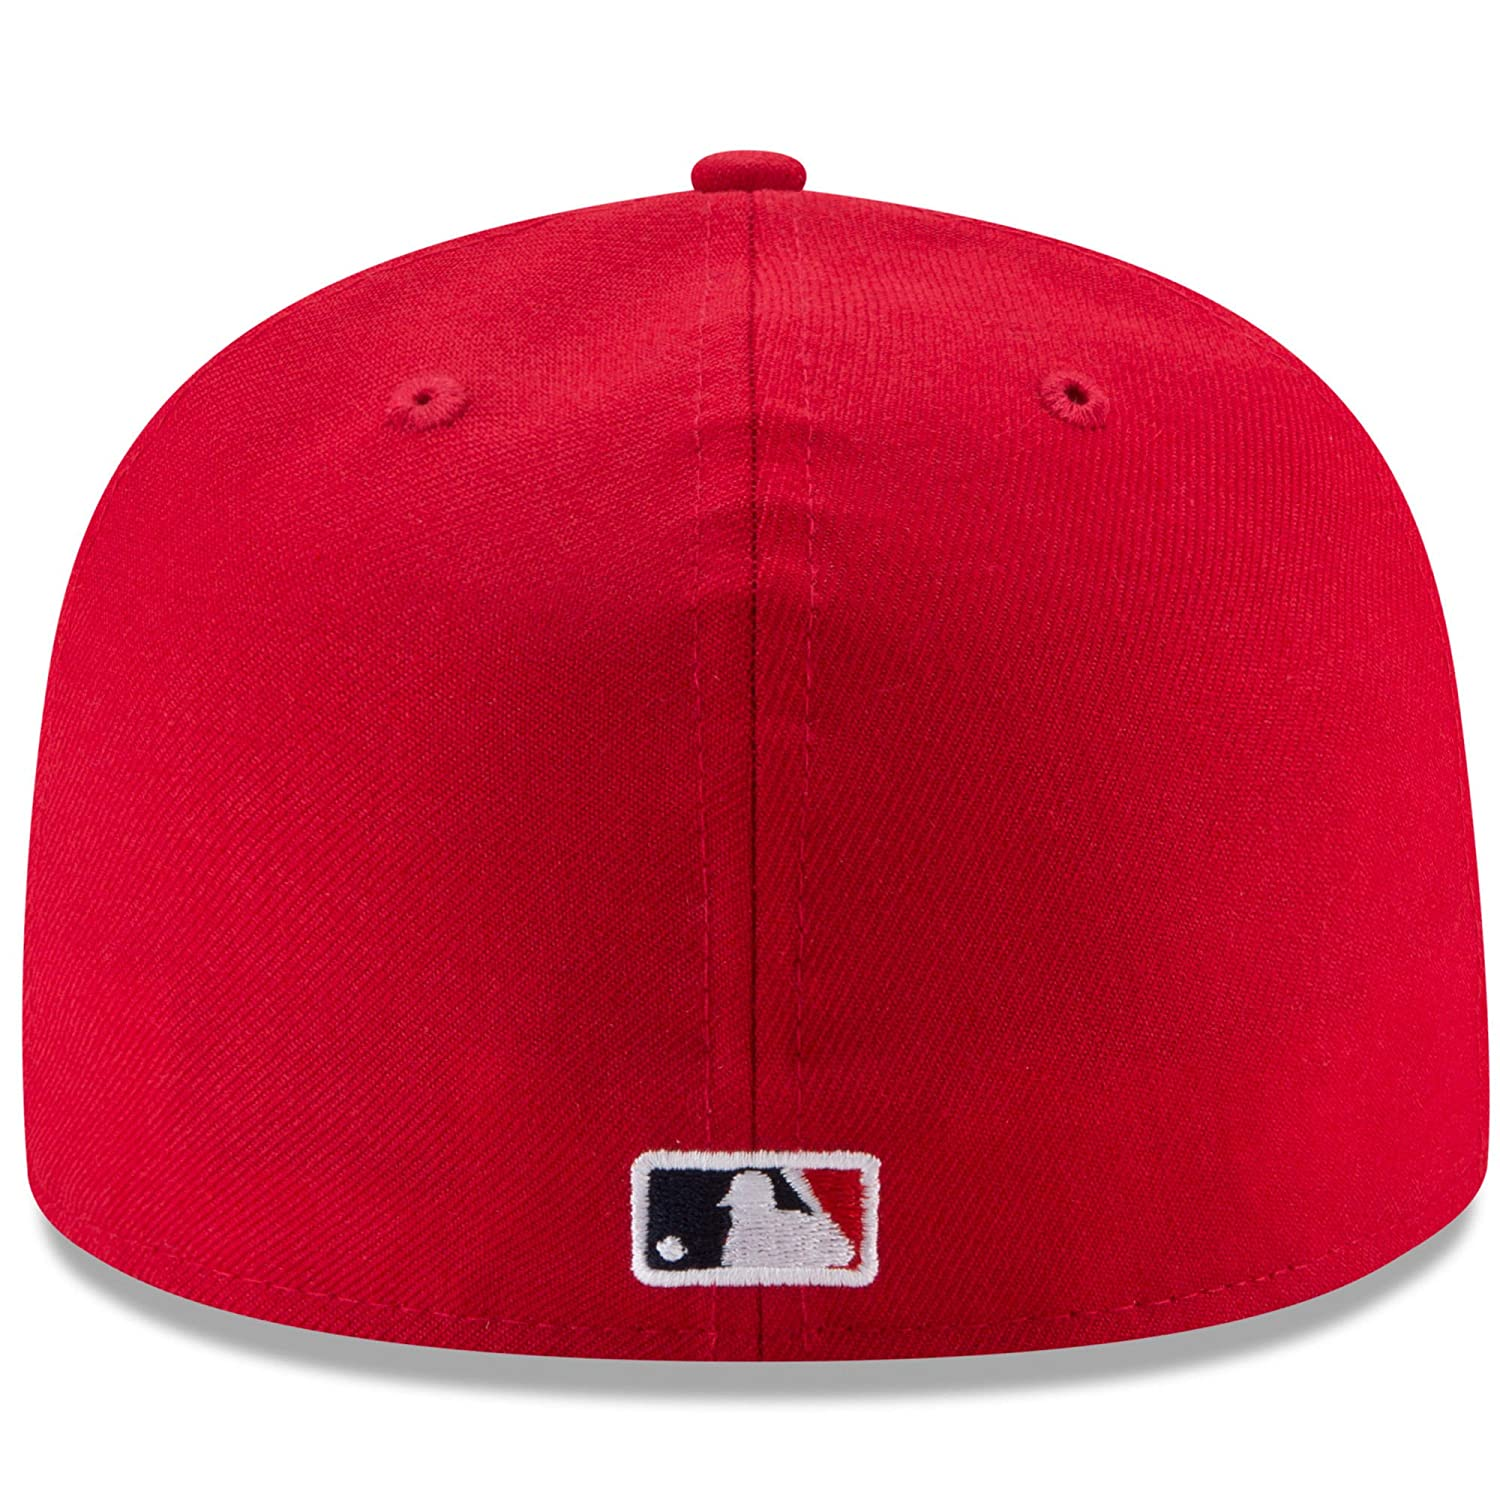 11a088cabc9e5d Amazon.com : New Era 59FIFTY Los Angeles Angels of Anaheim 2018 Authentic  Collection On Field Game Cap : Shoes